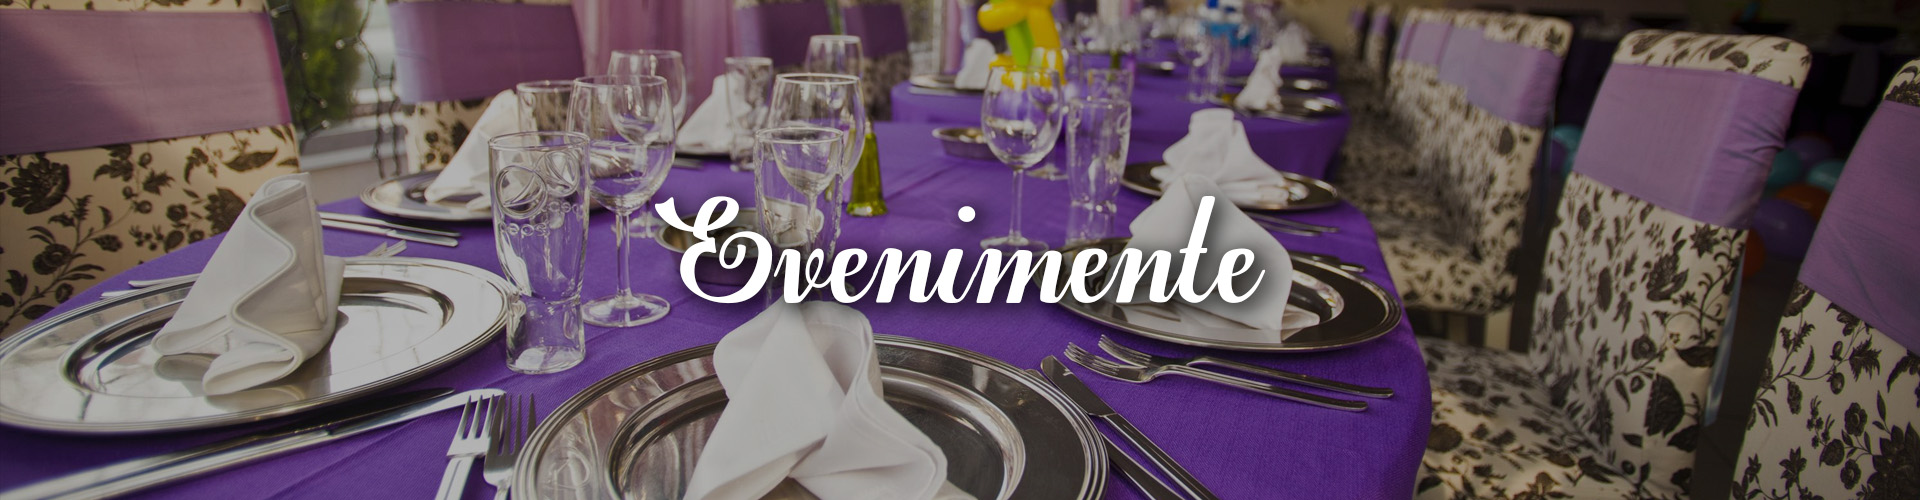 Evenimente Xanadurestaurant